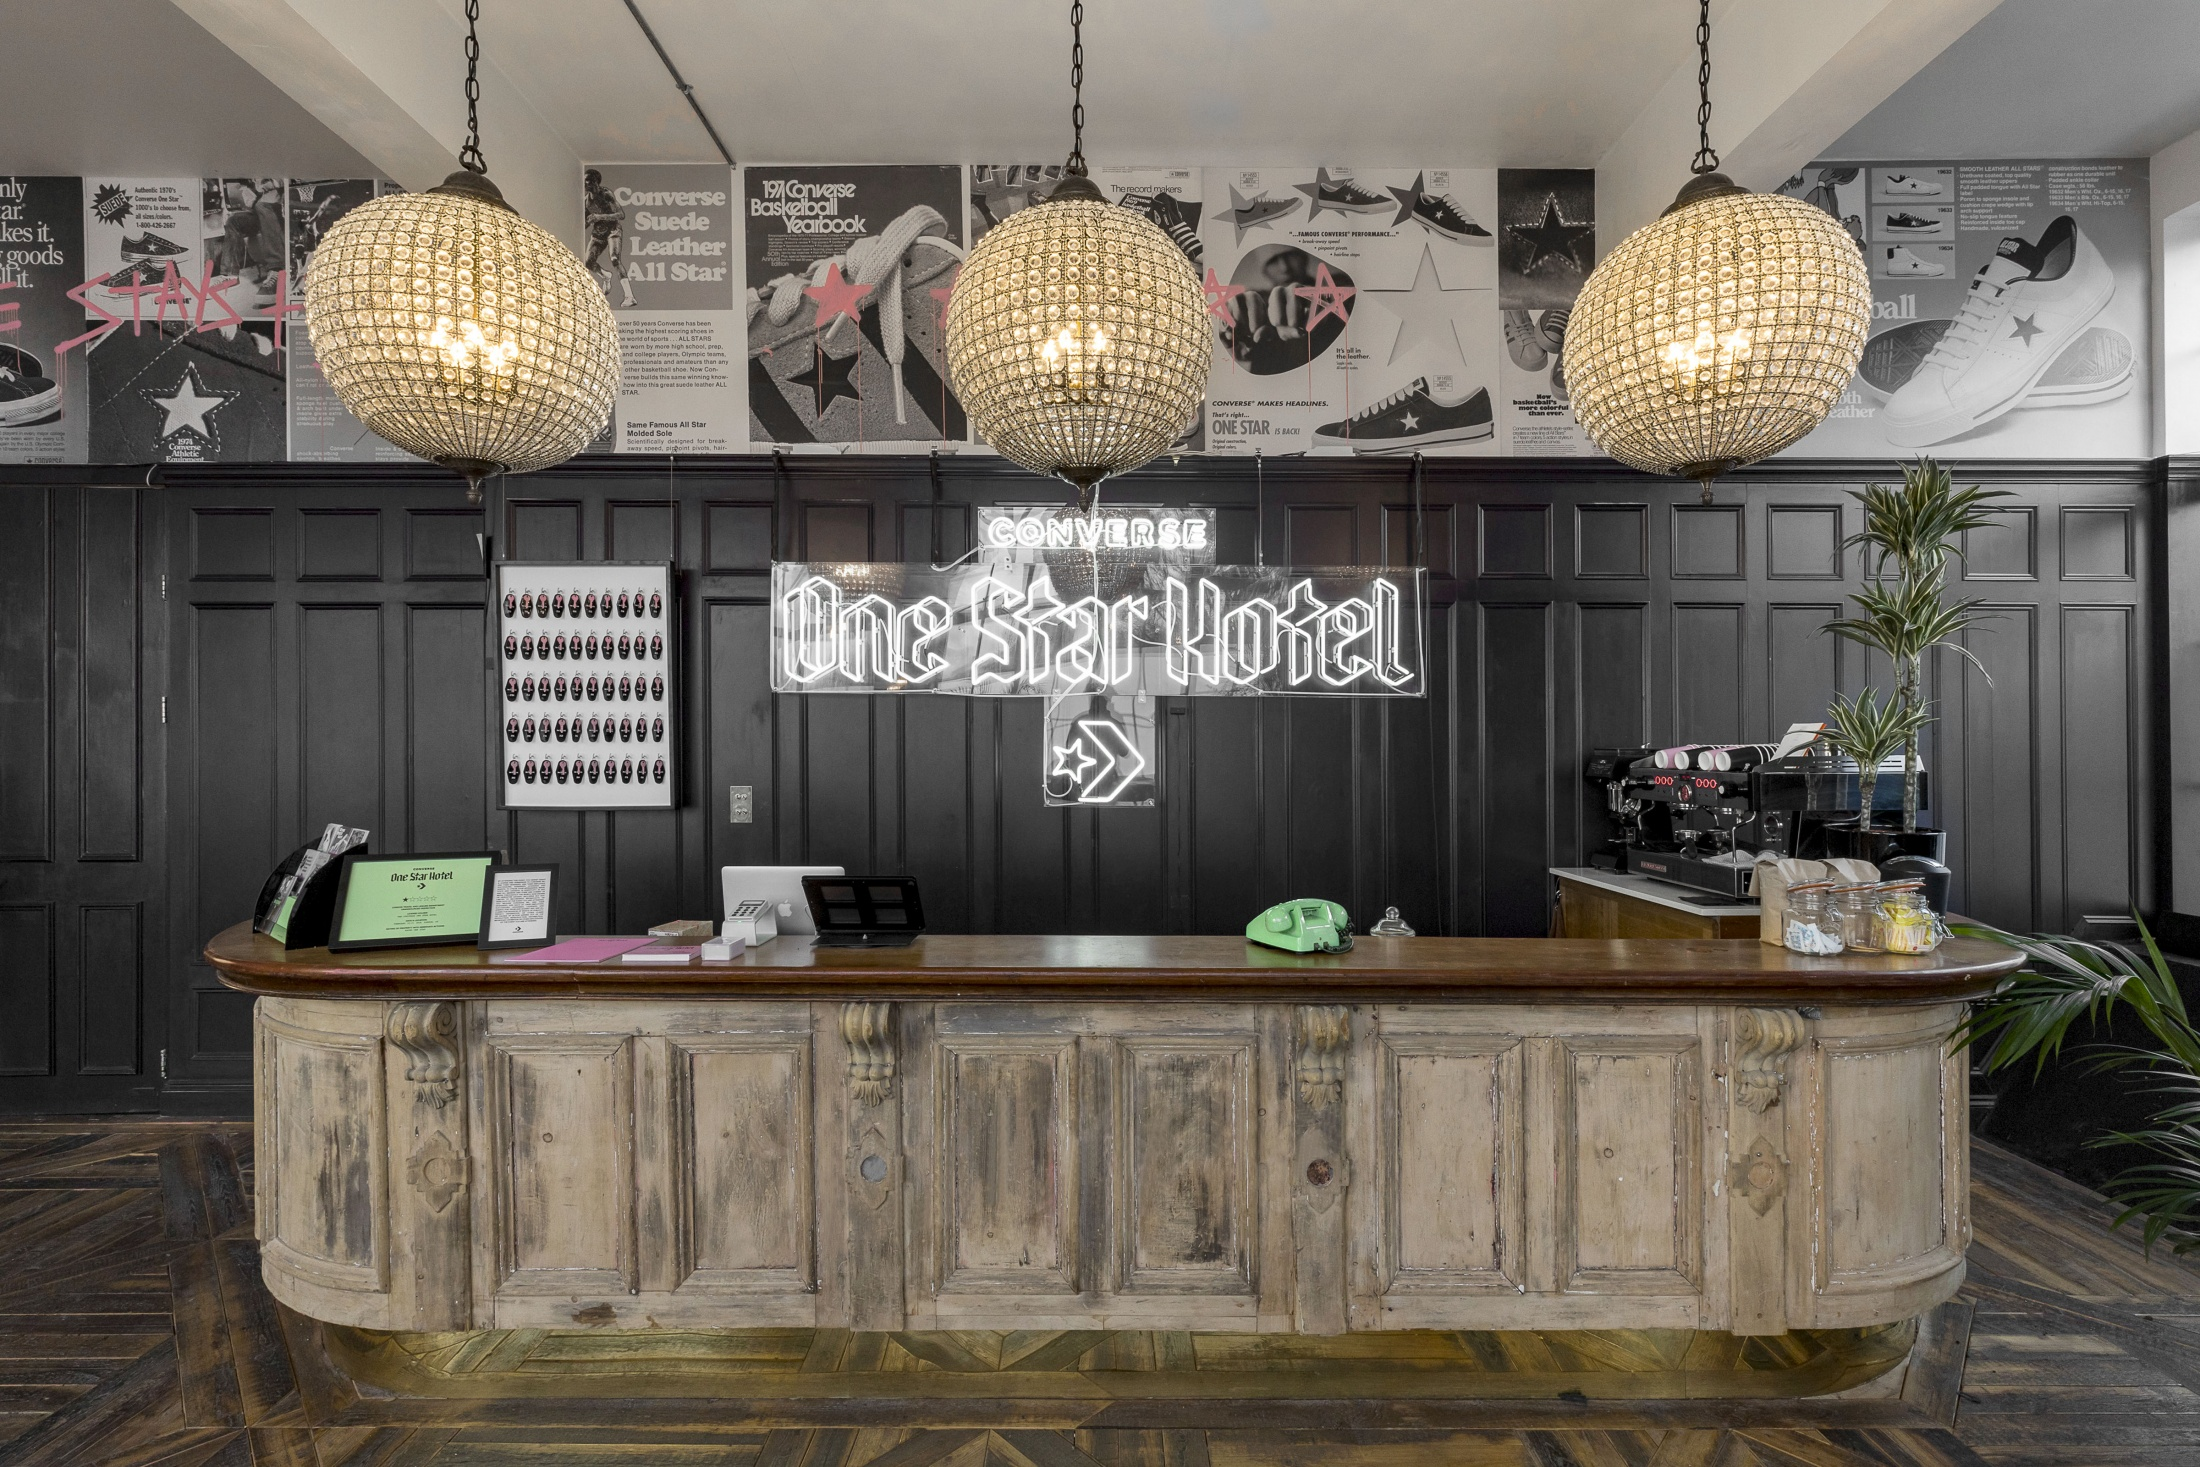 Image Media for One Star Hotel Pop Up – Shoreditch, London